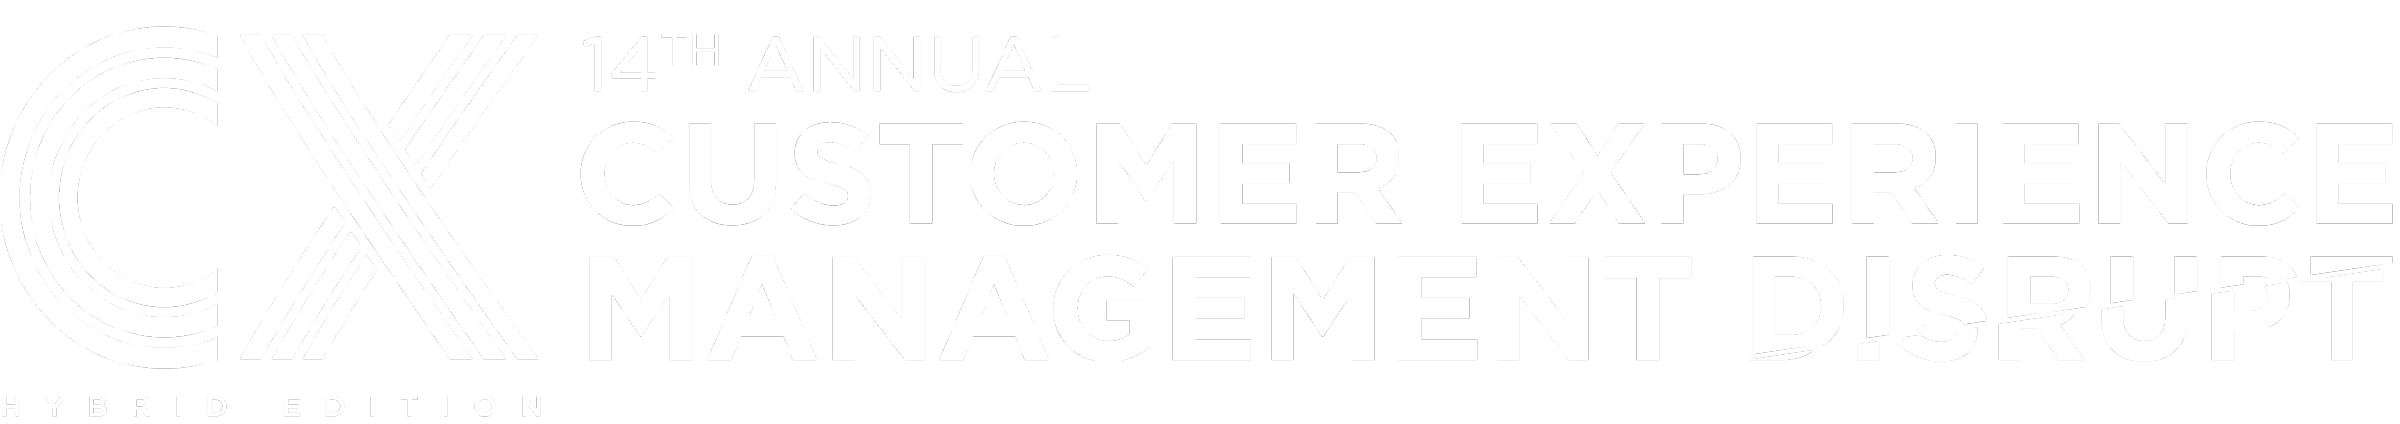 Customer Experience Management Online Summit 2020